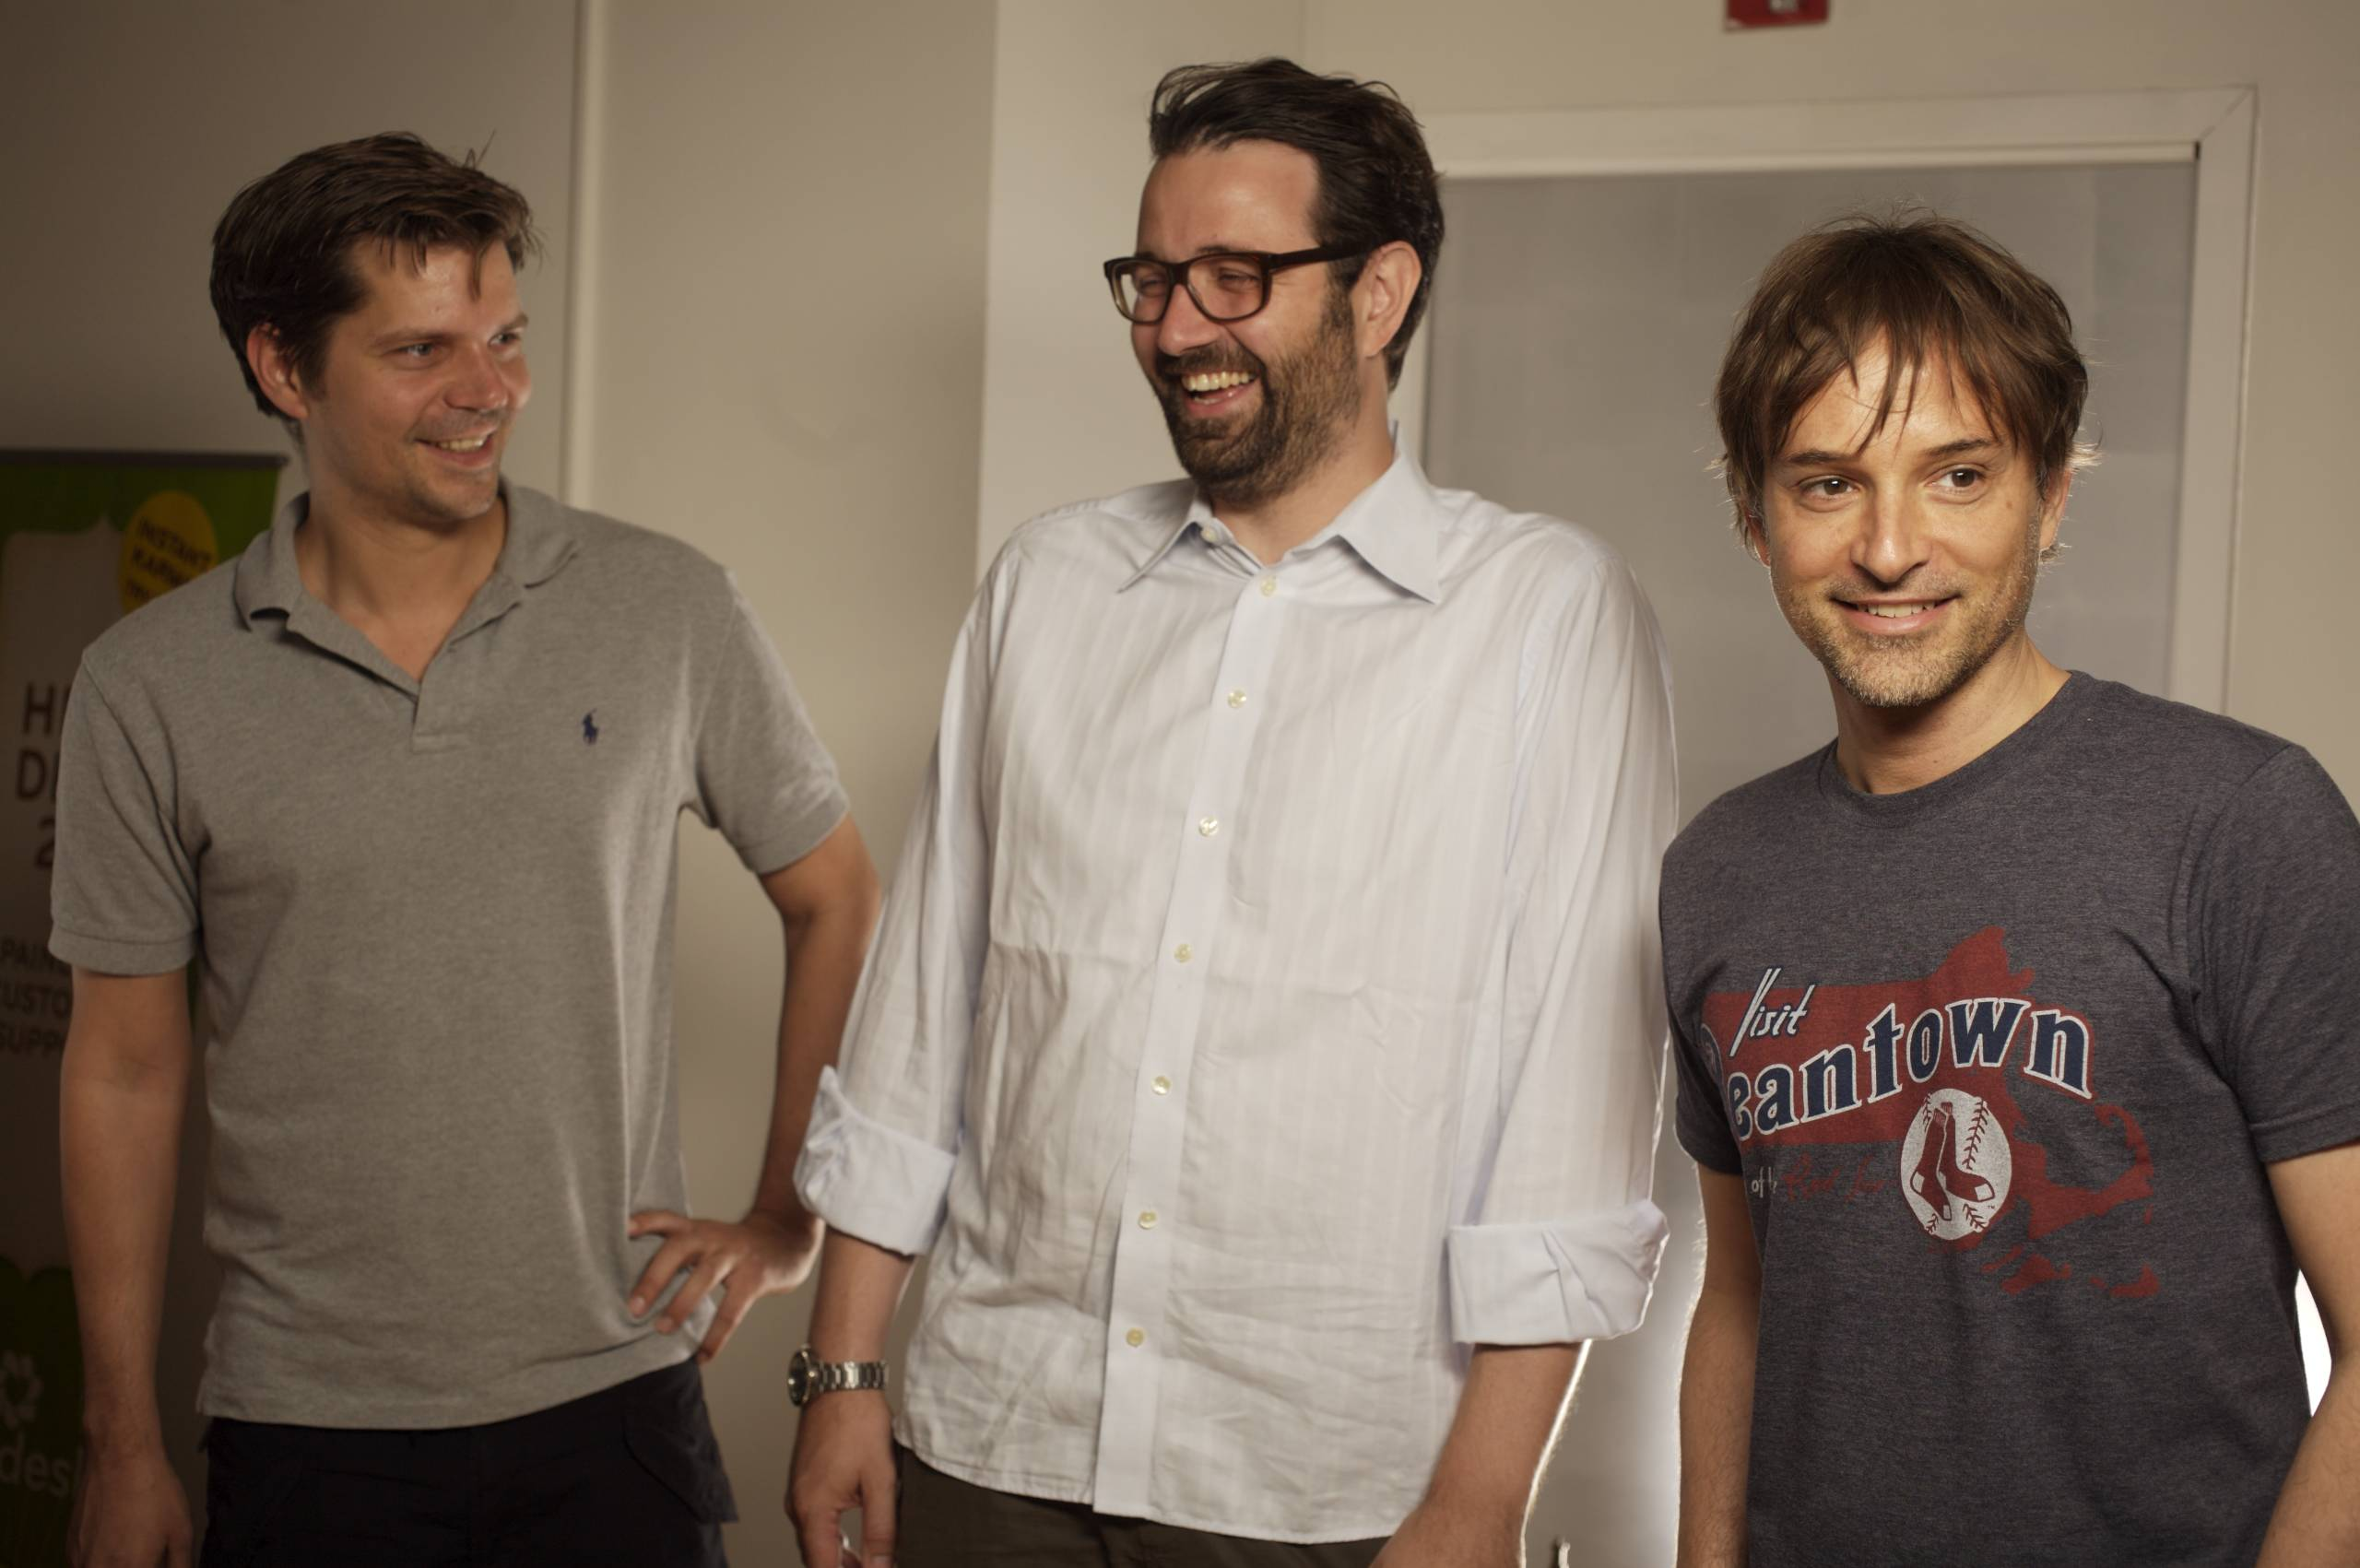 Primdahl, Svane, and Aghassipour (l-r) when they first moved to the U.S. in 2009.